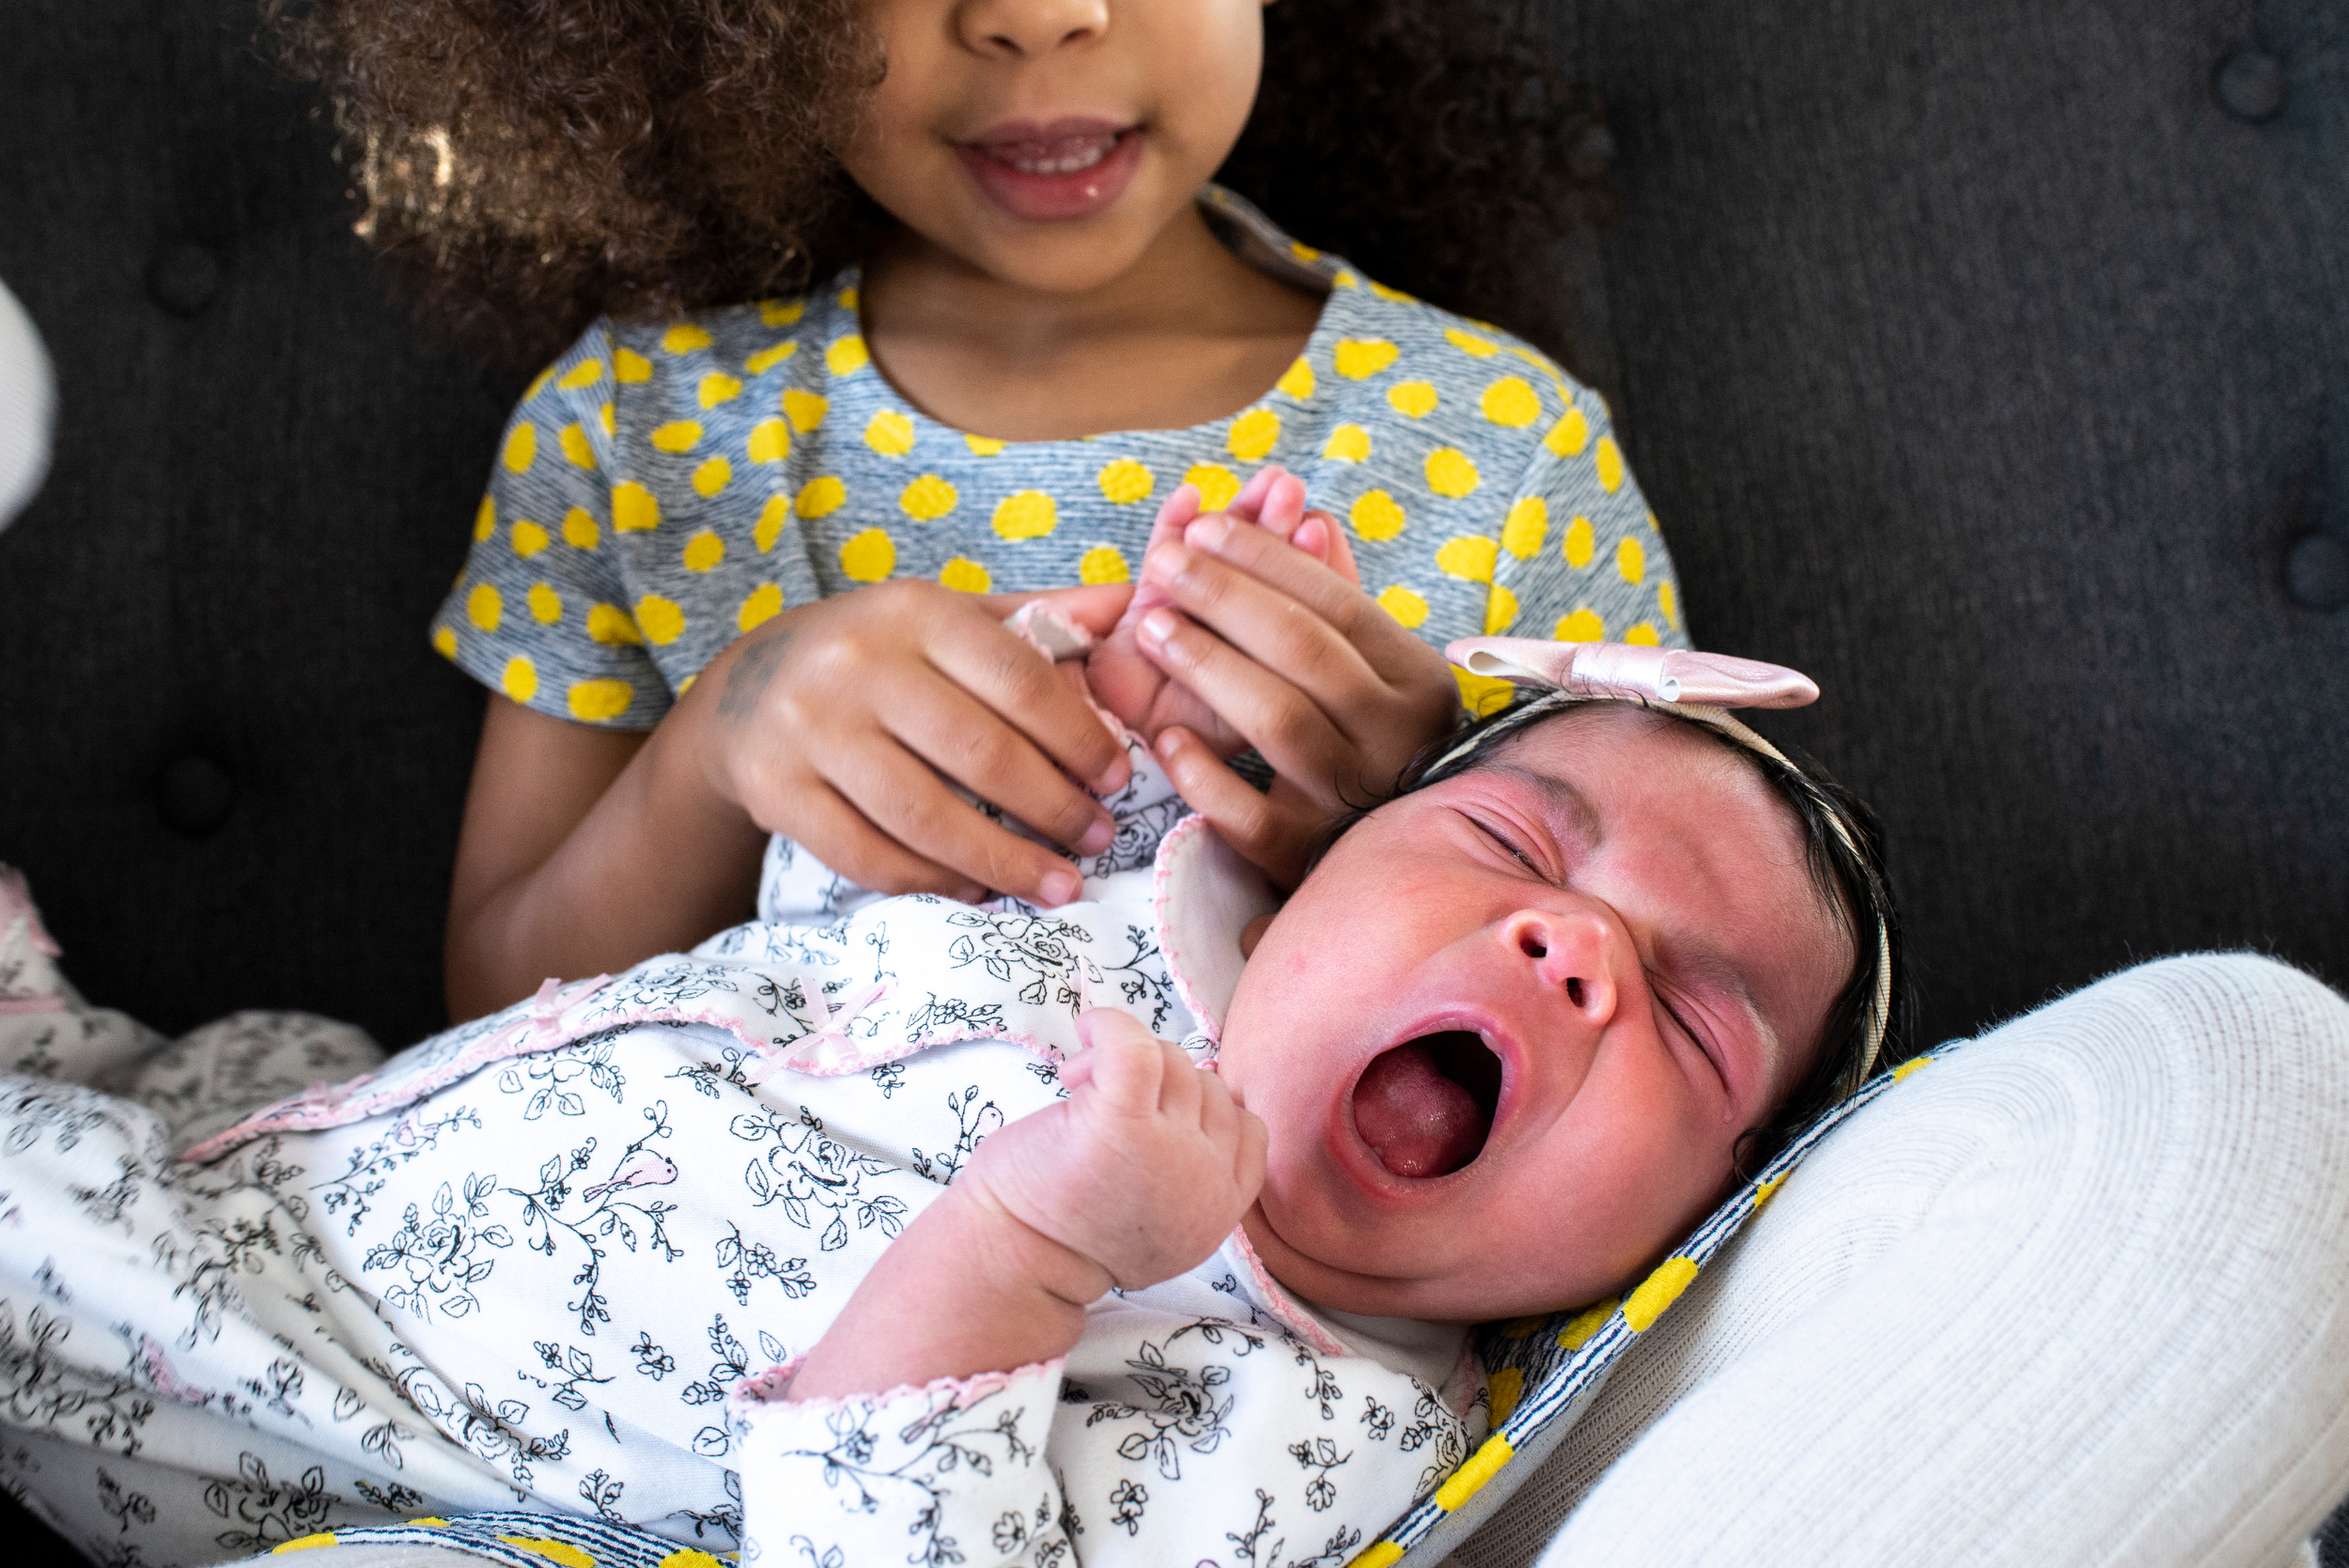 Presenting Little Miss Sunshine. - Just a few days old, this precious little girl was surrounded by curious siblings who couldn't get enough of her. See their story.